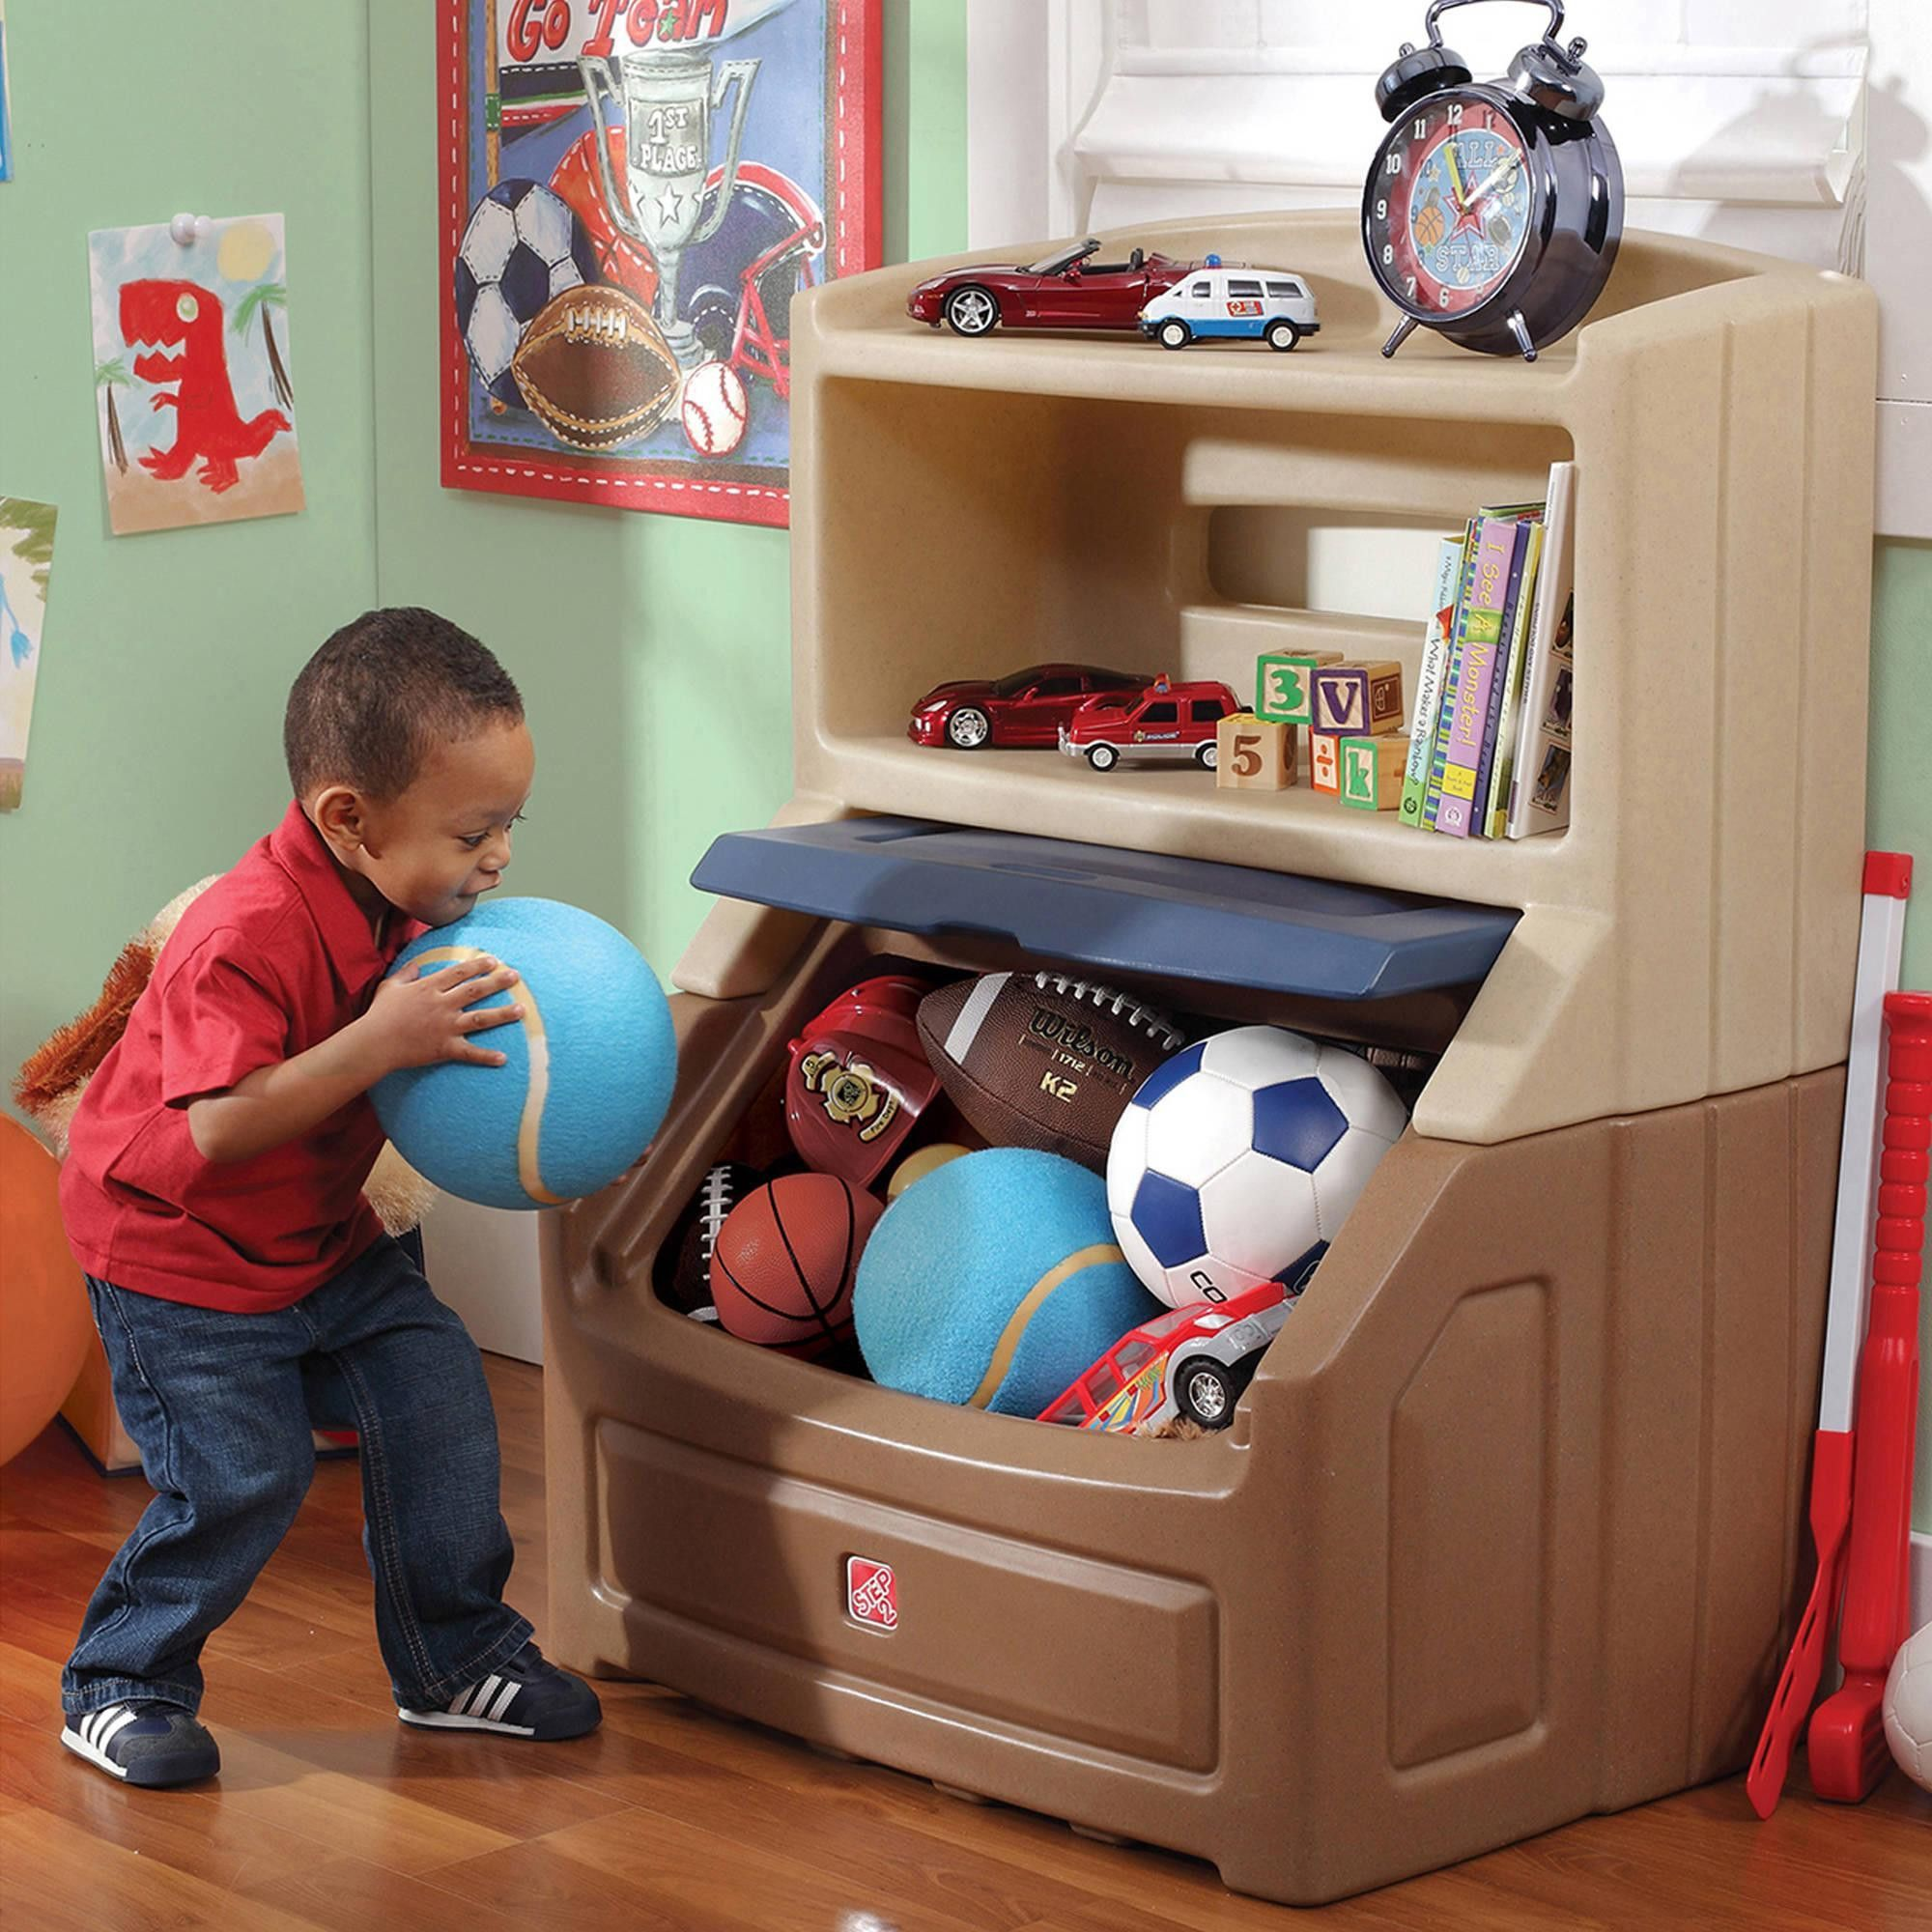 Lift And Hide Bookcase Storage Chest Only 5 In Stock Order Today Product Description The Step With Images Kids Storage Bins Kids Play Room Organization Toy Storage Boxes